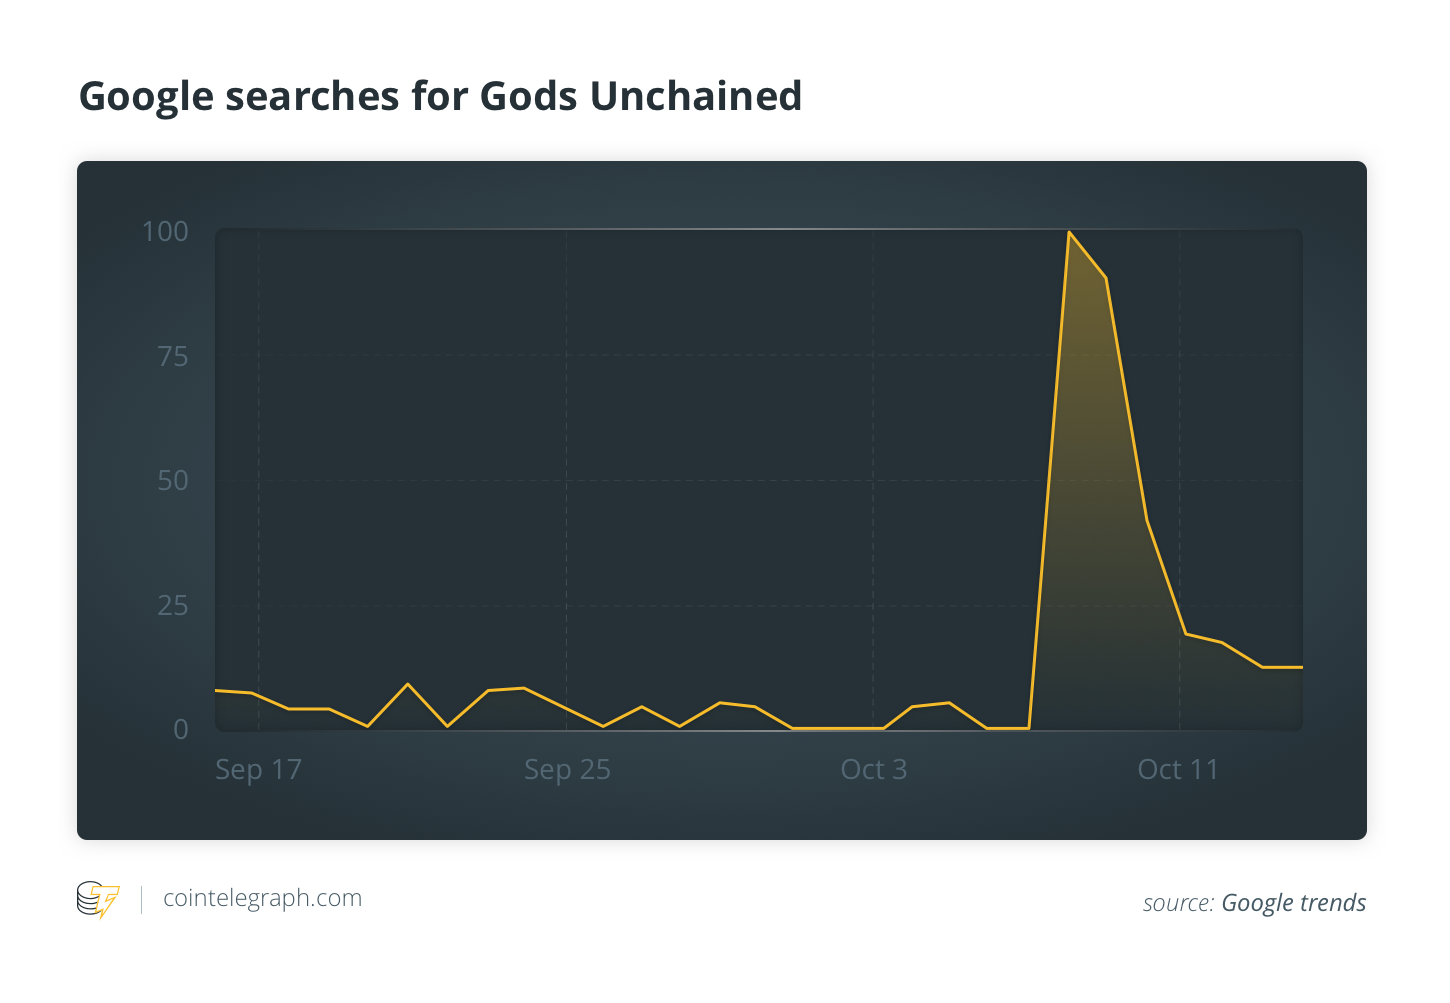 Google searches for Gods Unchained